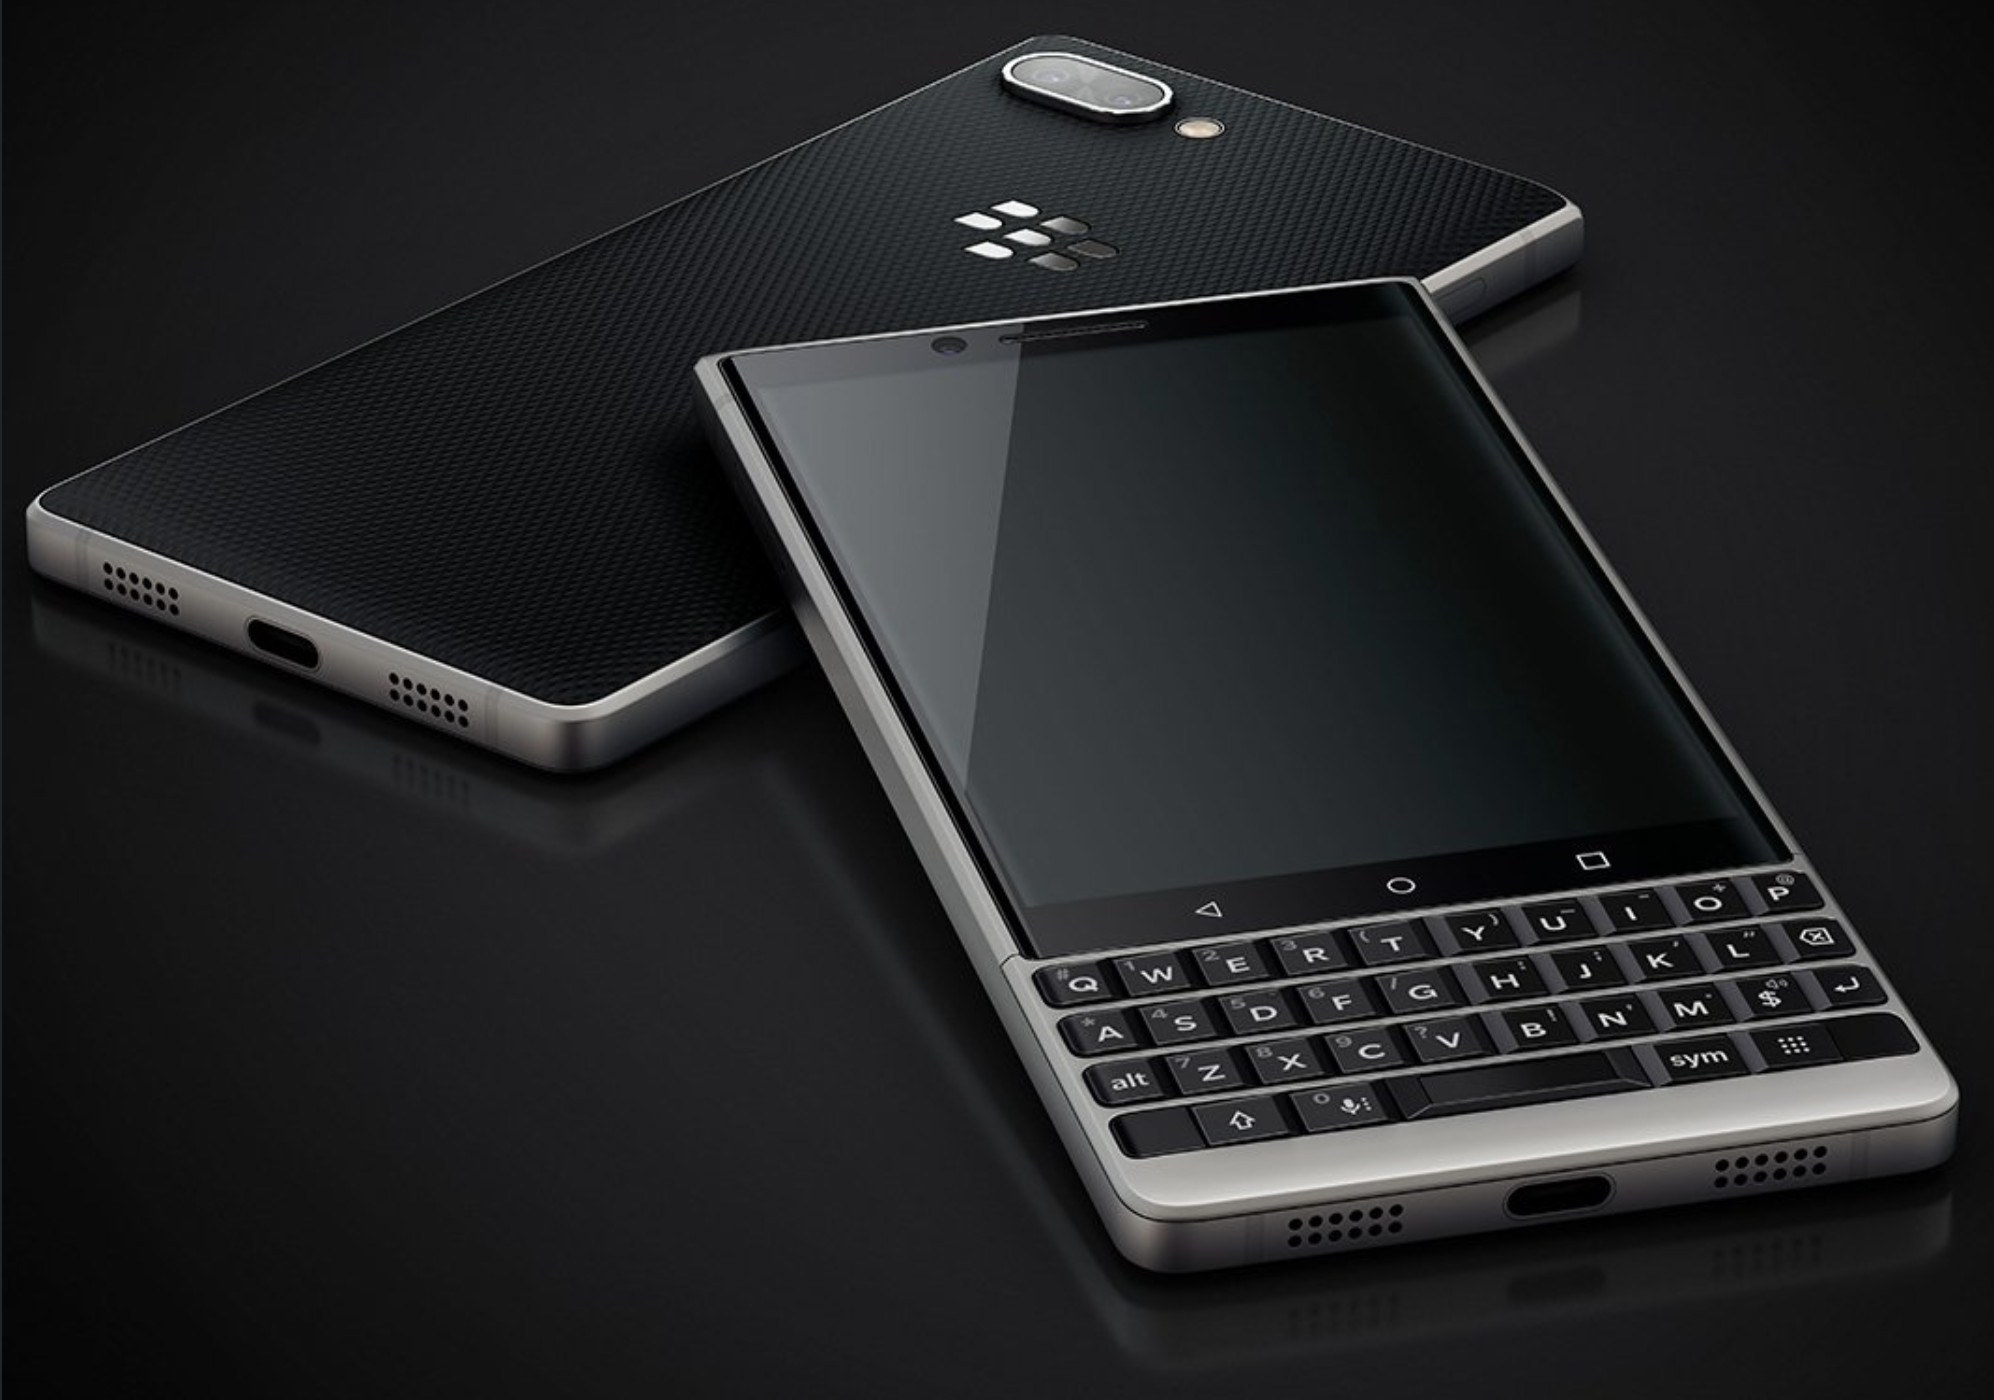 BlackBerry KEY2 image leaked ahead of its official launch